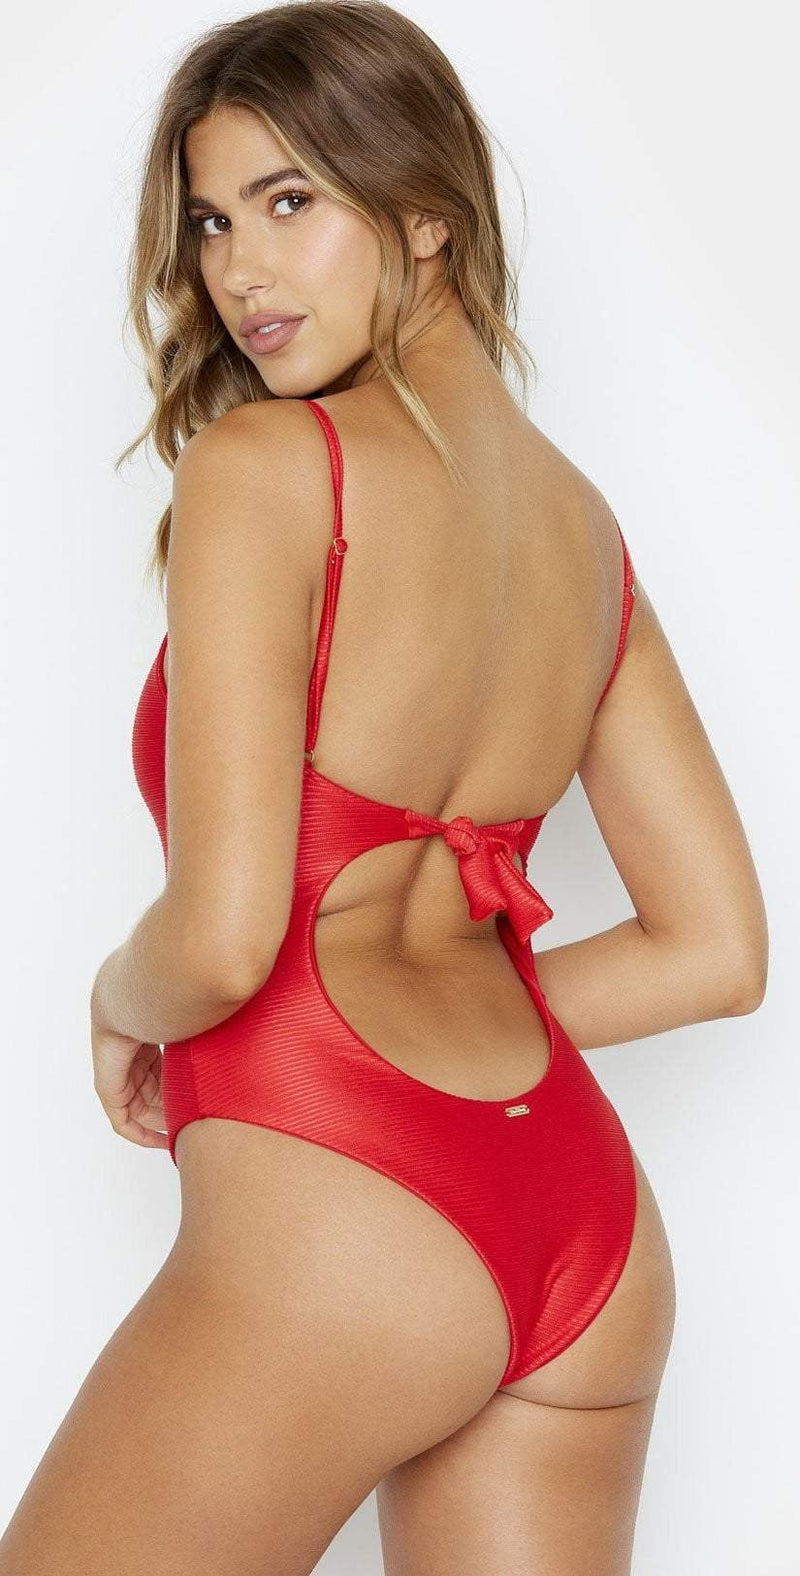 Beach Bunny Katrina Red One Piece Swimsuit B191471P REDD: